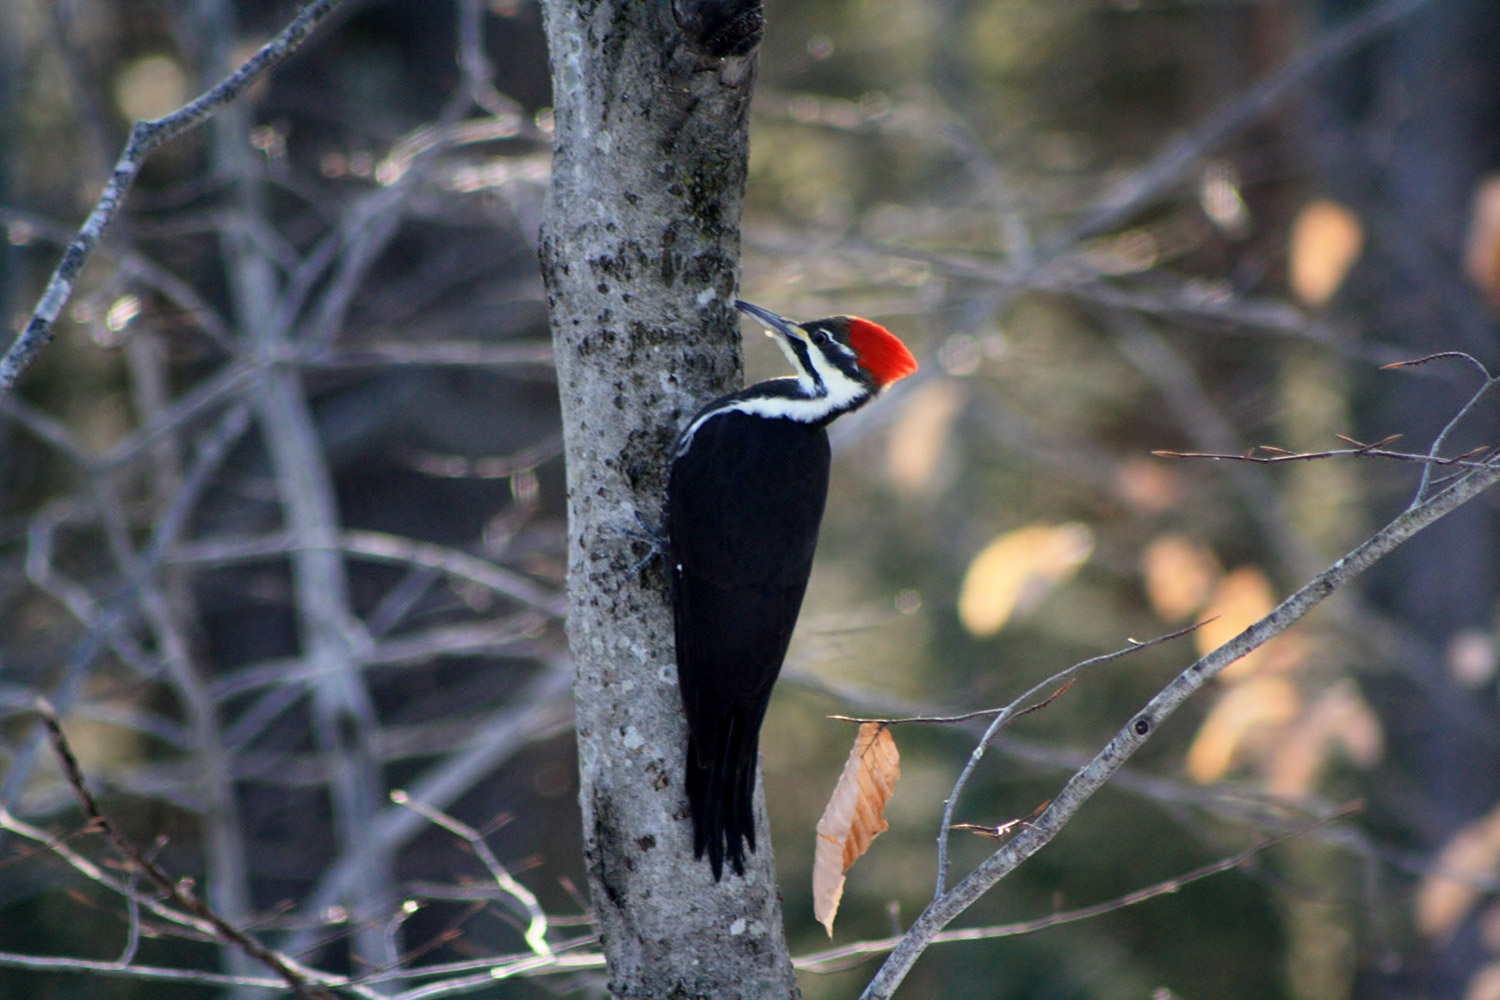 The more carpenter ants this pileated woodpecker eats, the better for Bruce Small, who's happy to have this elusive bird in his Raymond yard.